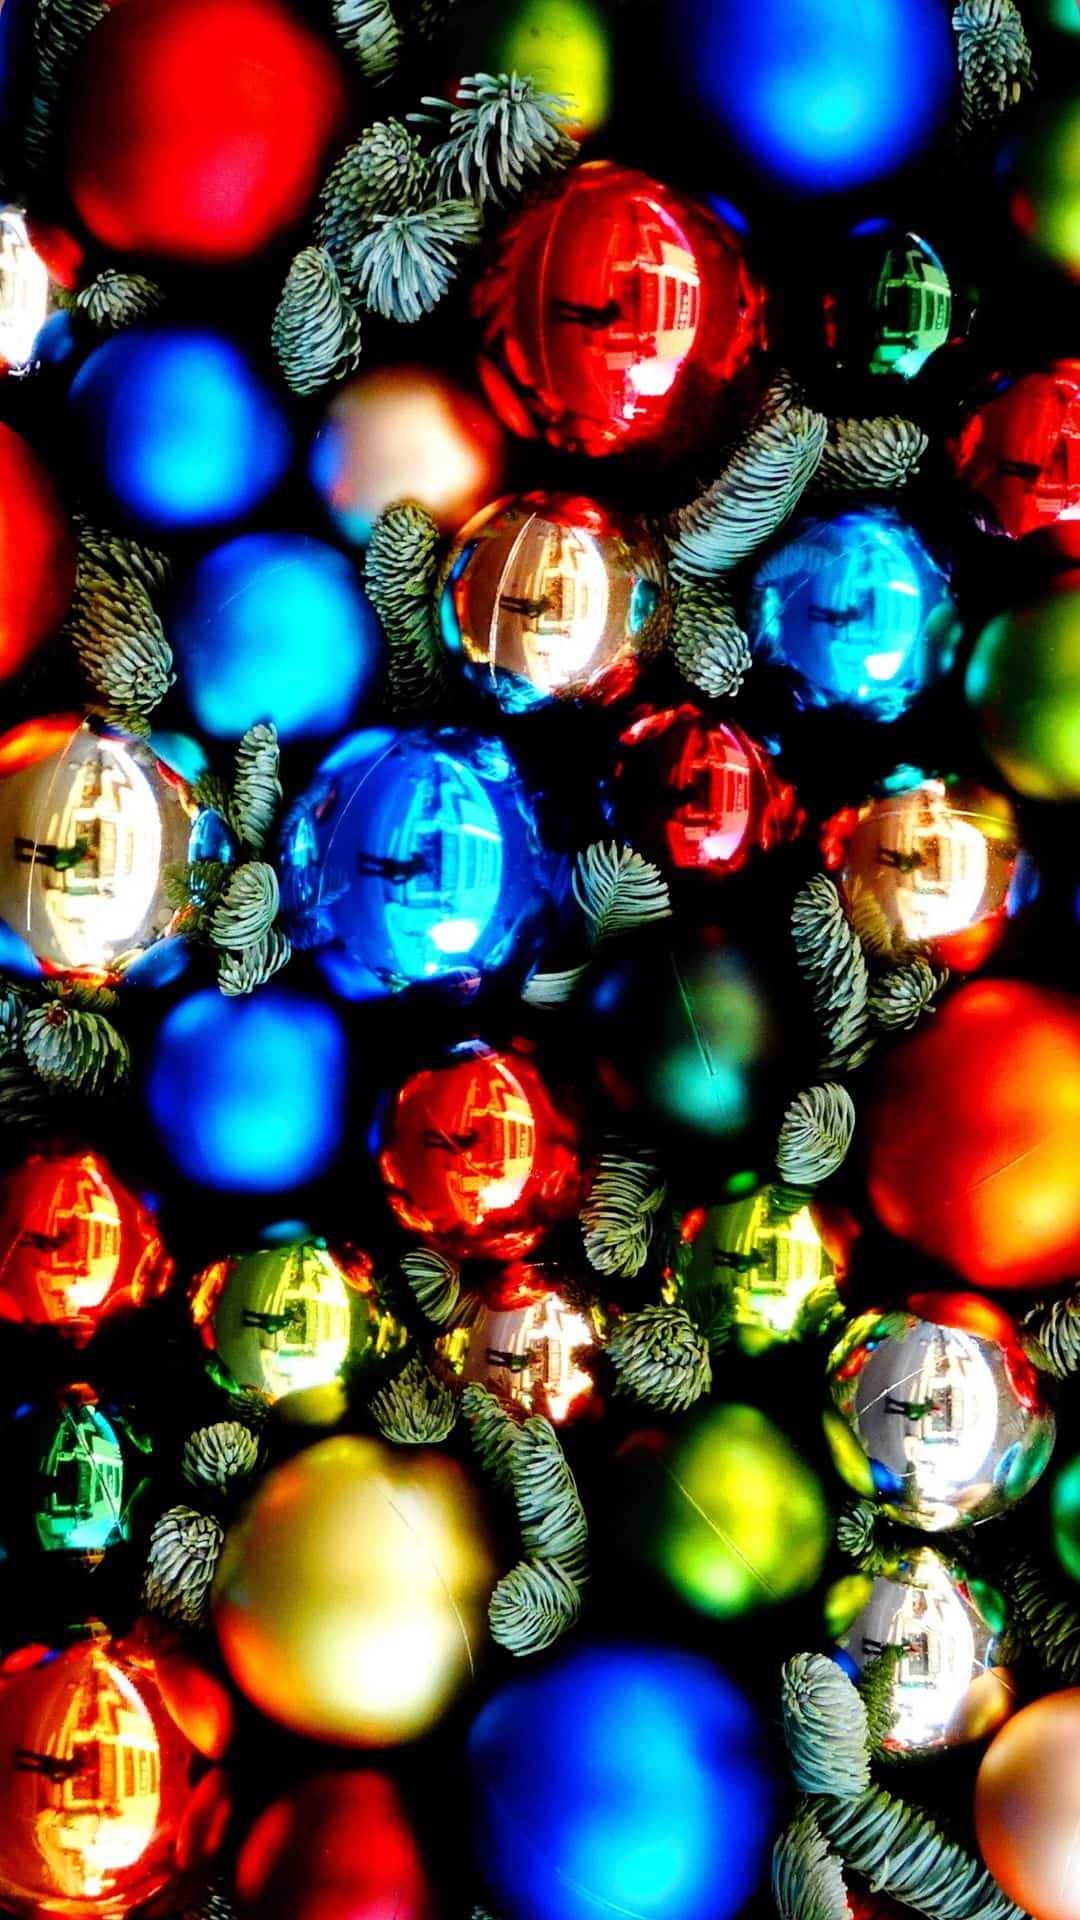 Cozy Christmas Backgrounds For iPhone Wallpaper 20